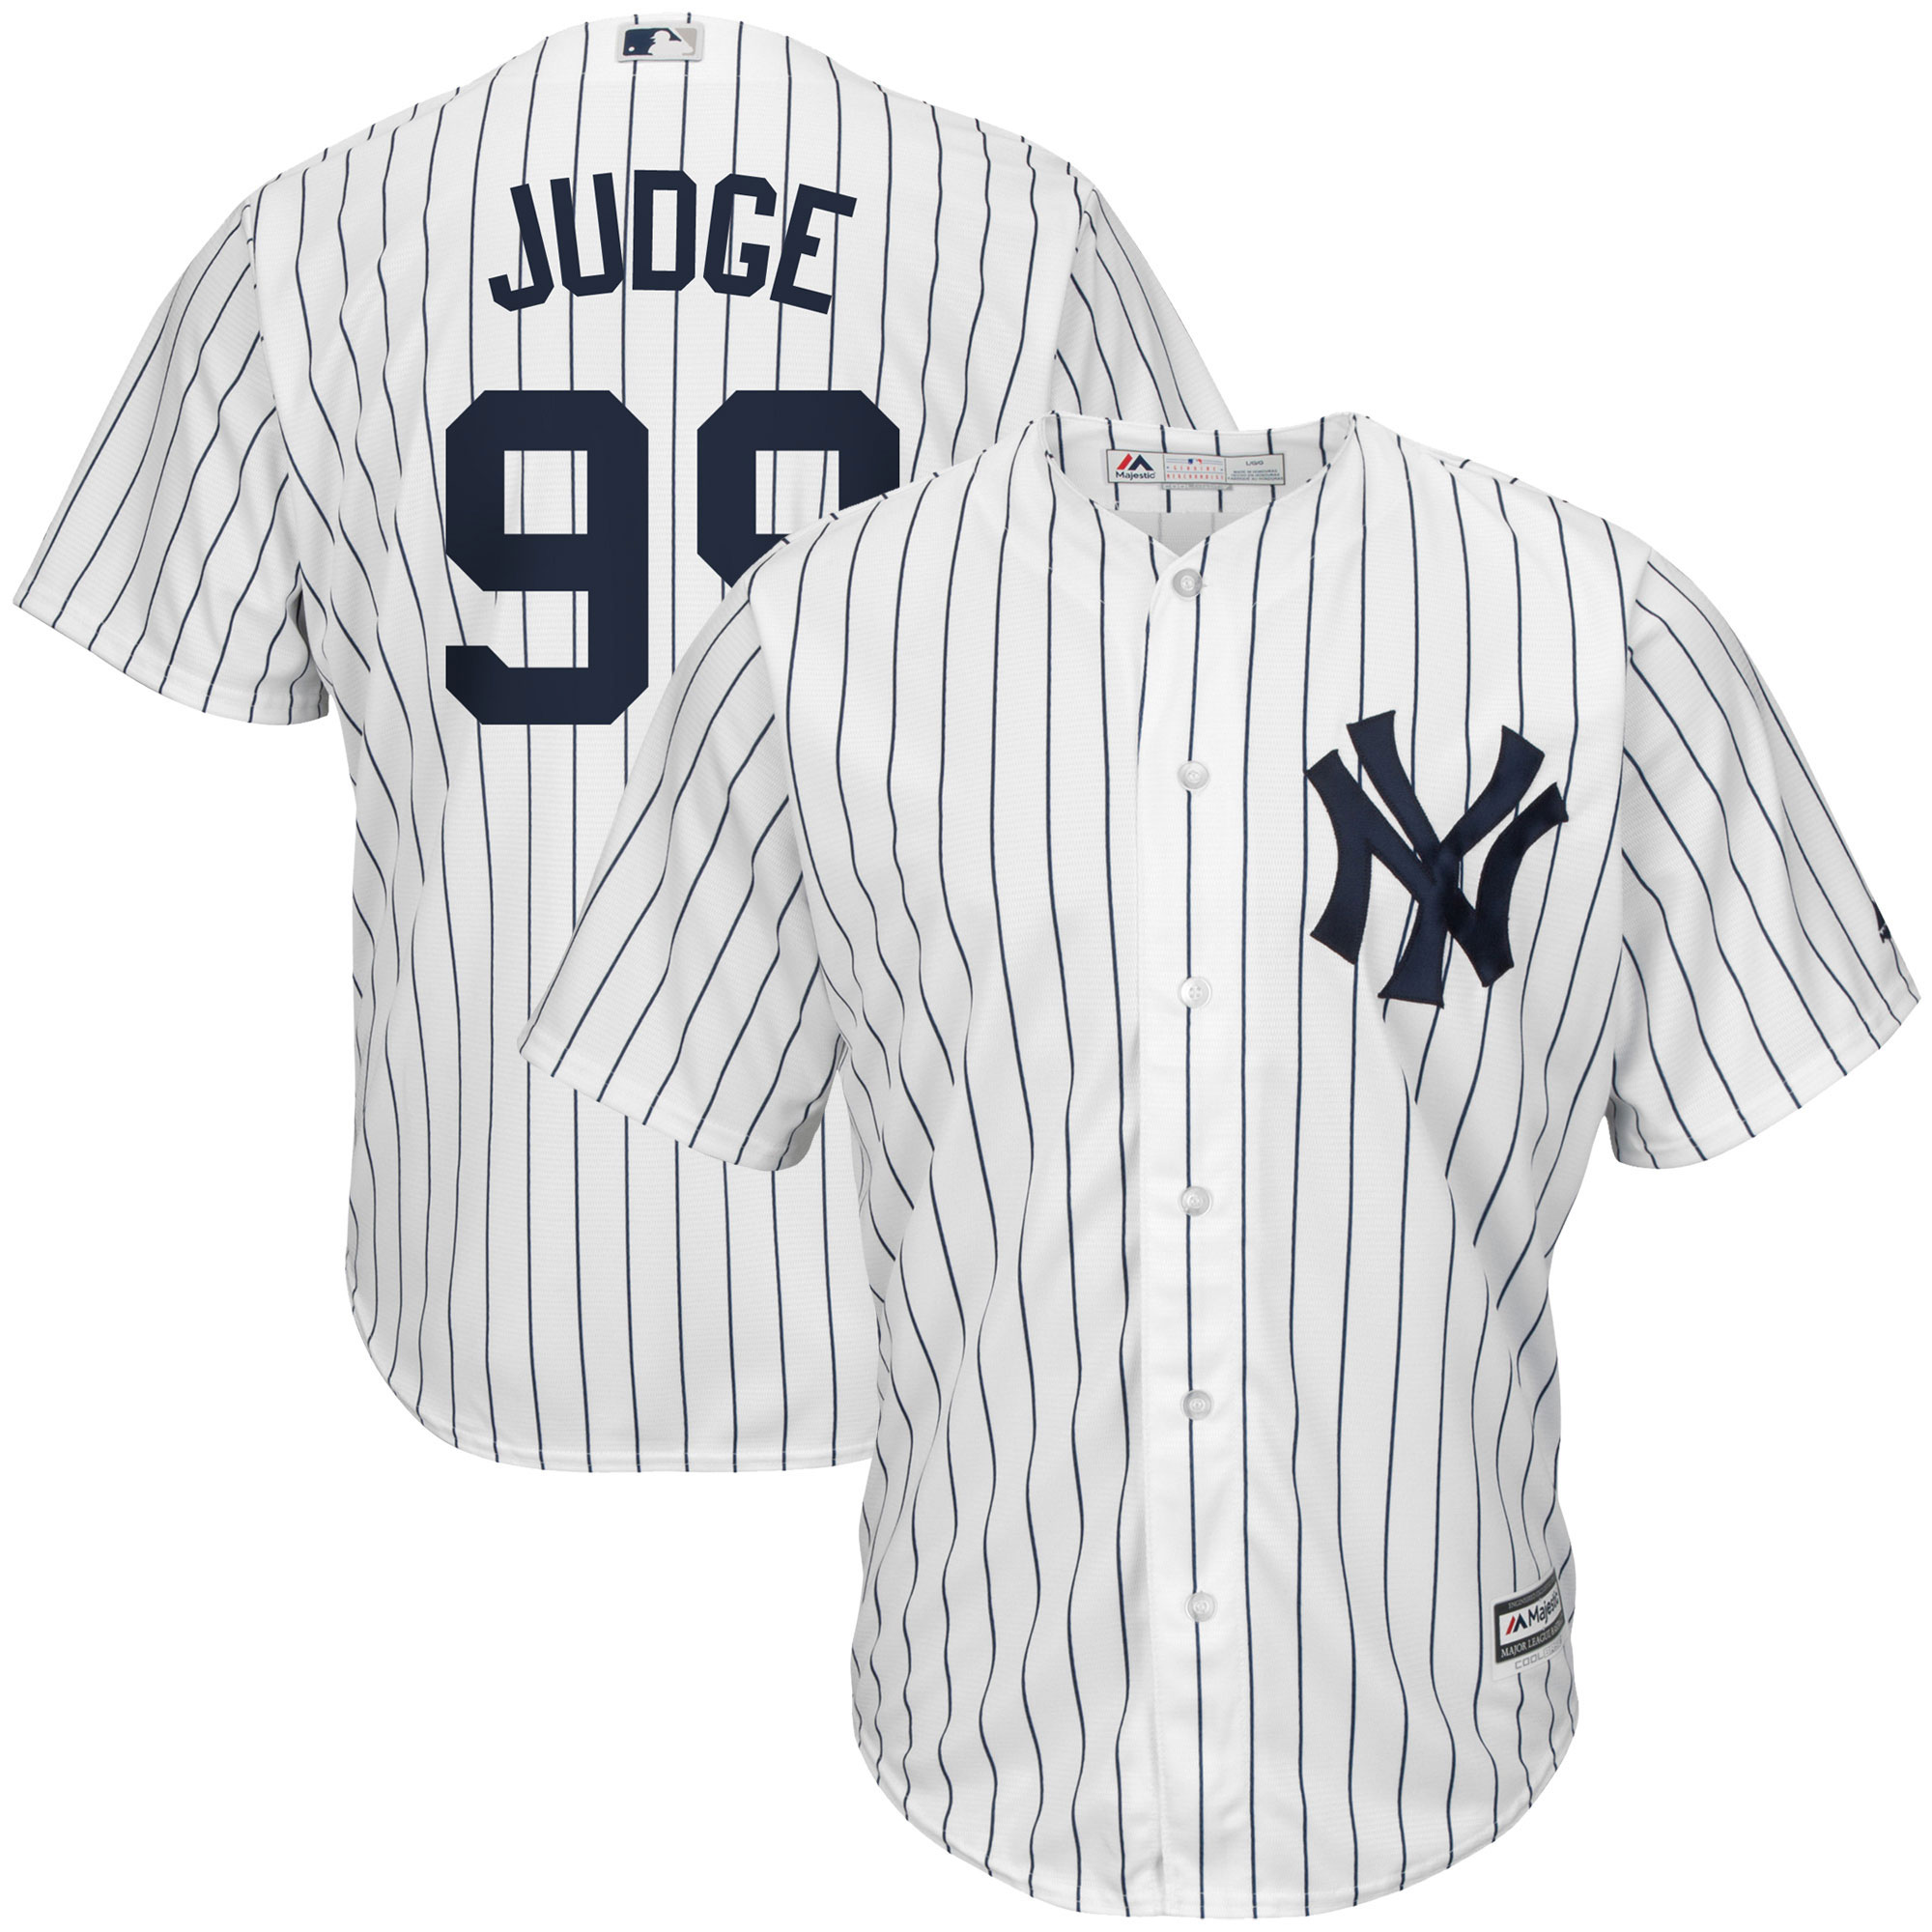 bc897d650b1 MLB Products and MLB Apparel - Walmart.com